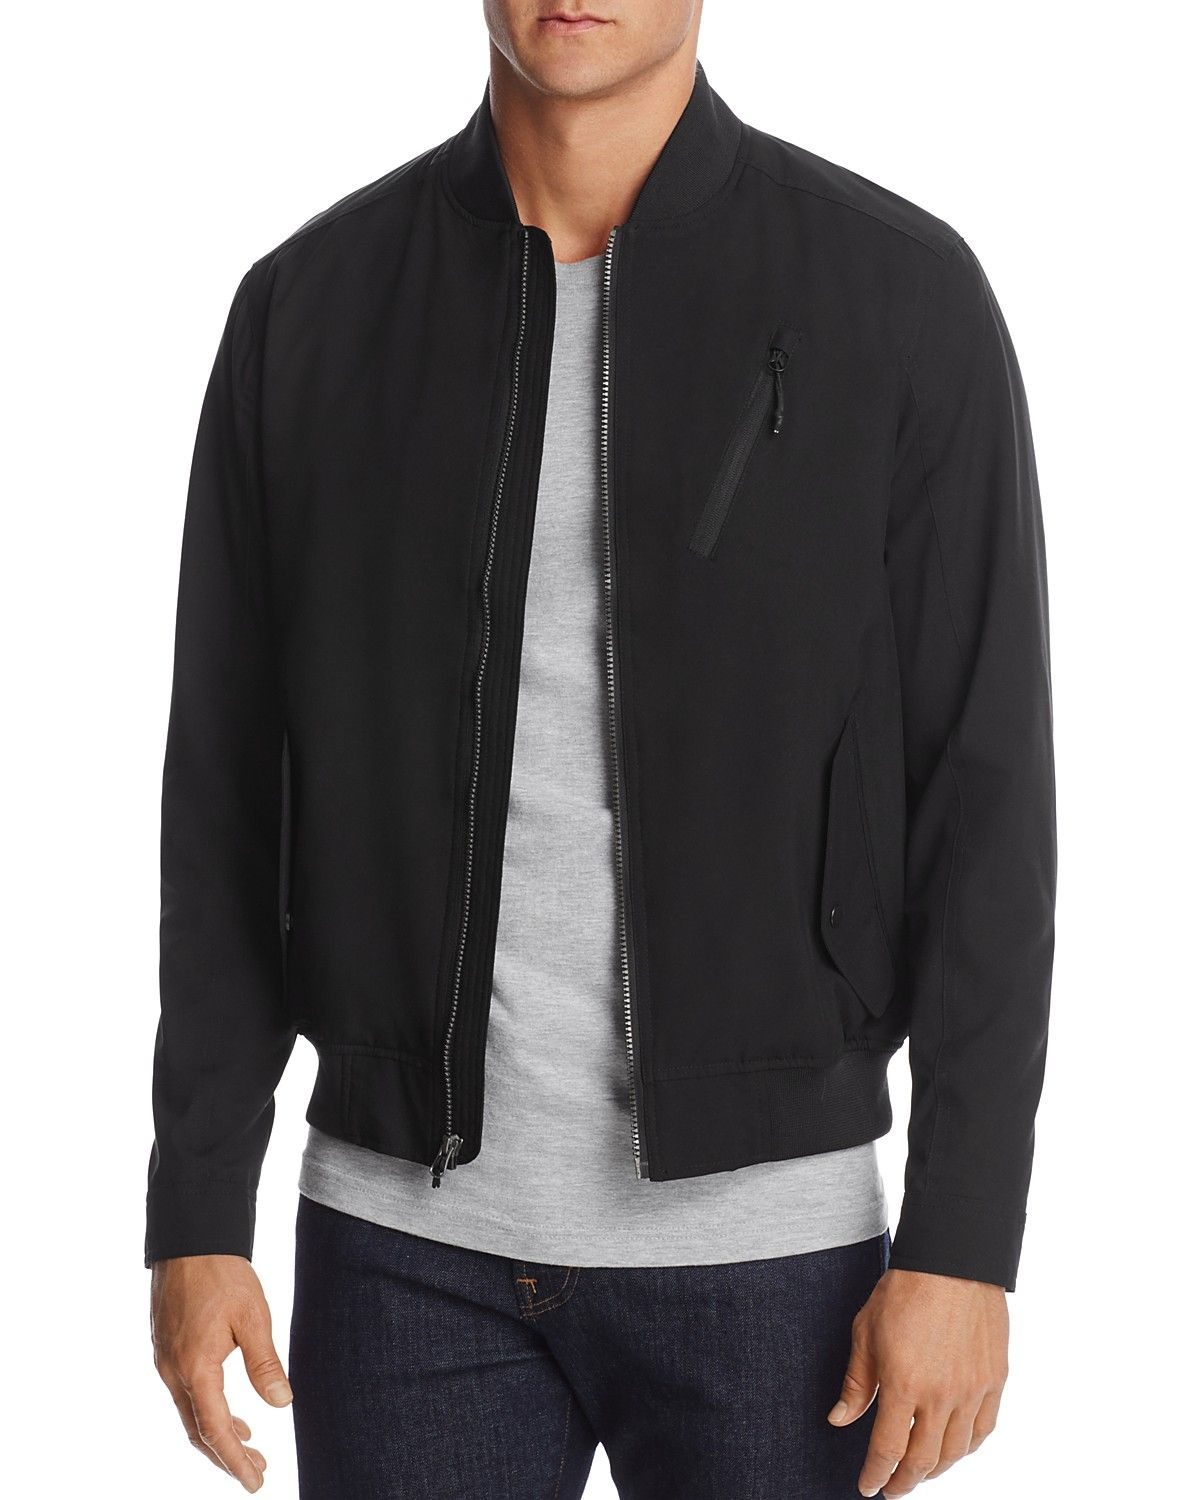 Hawke Co With Burkman Bros Bomber Jacket 100 Exclusive Price 195 00 Color Black Black Green [ 1500 x 1200 Pixel ]